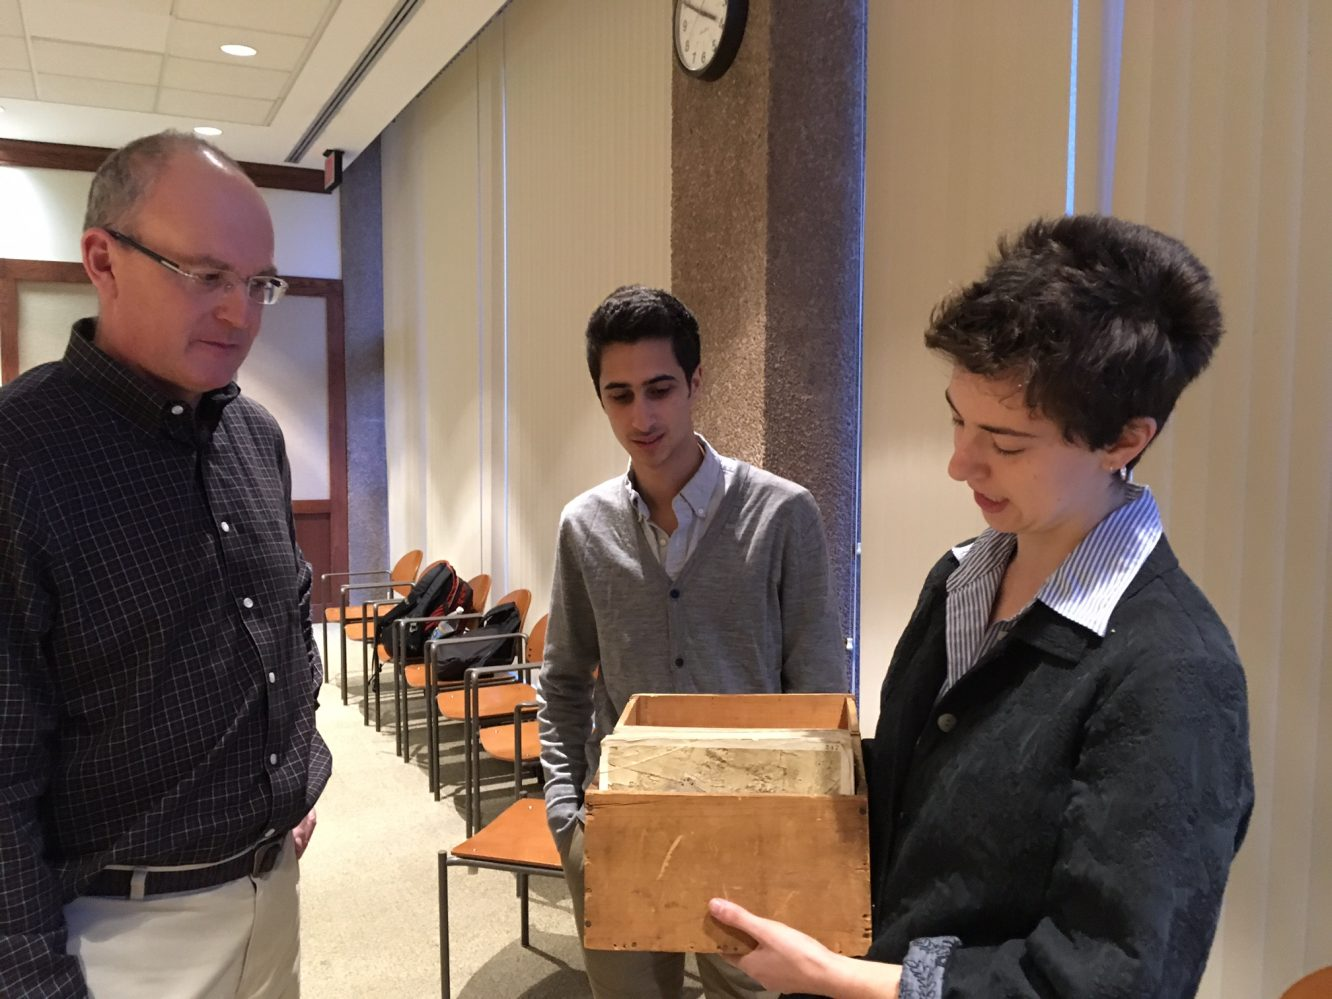 Louisa Winchell and Mat Shelley-Reade returning the box of 1922 aerial photographs used for their project to Roger Palmer (City of Middletown).